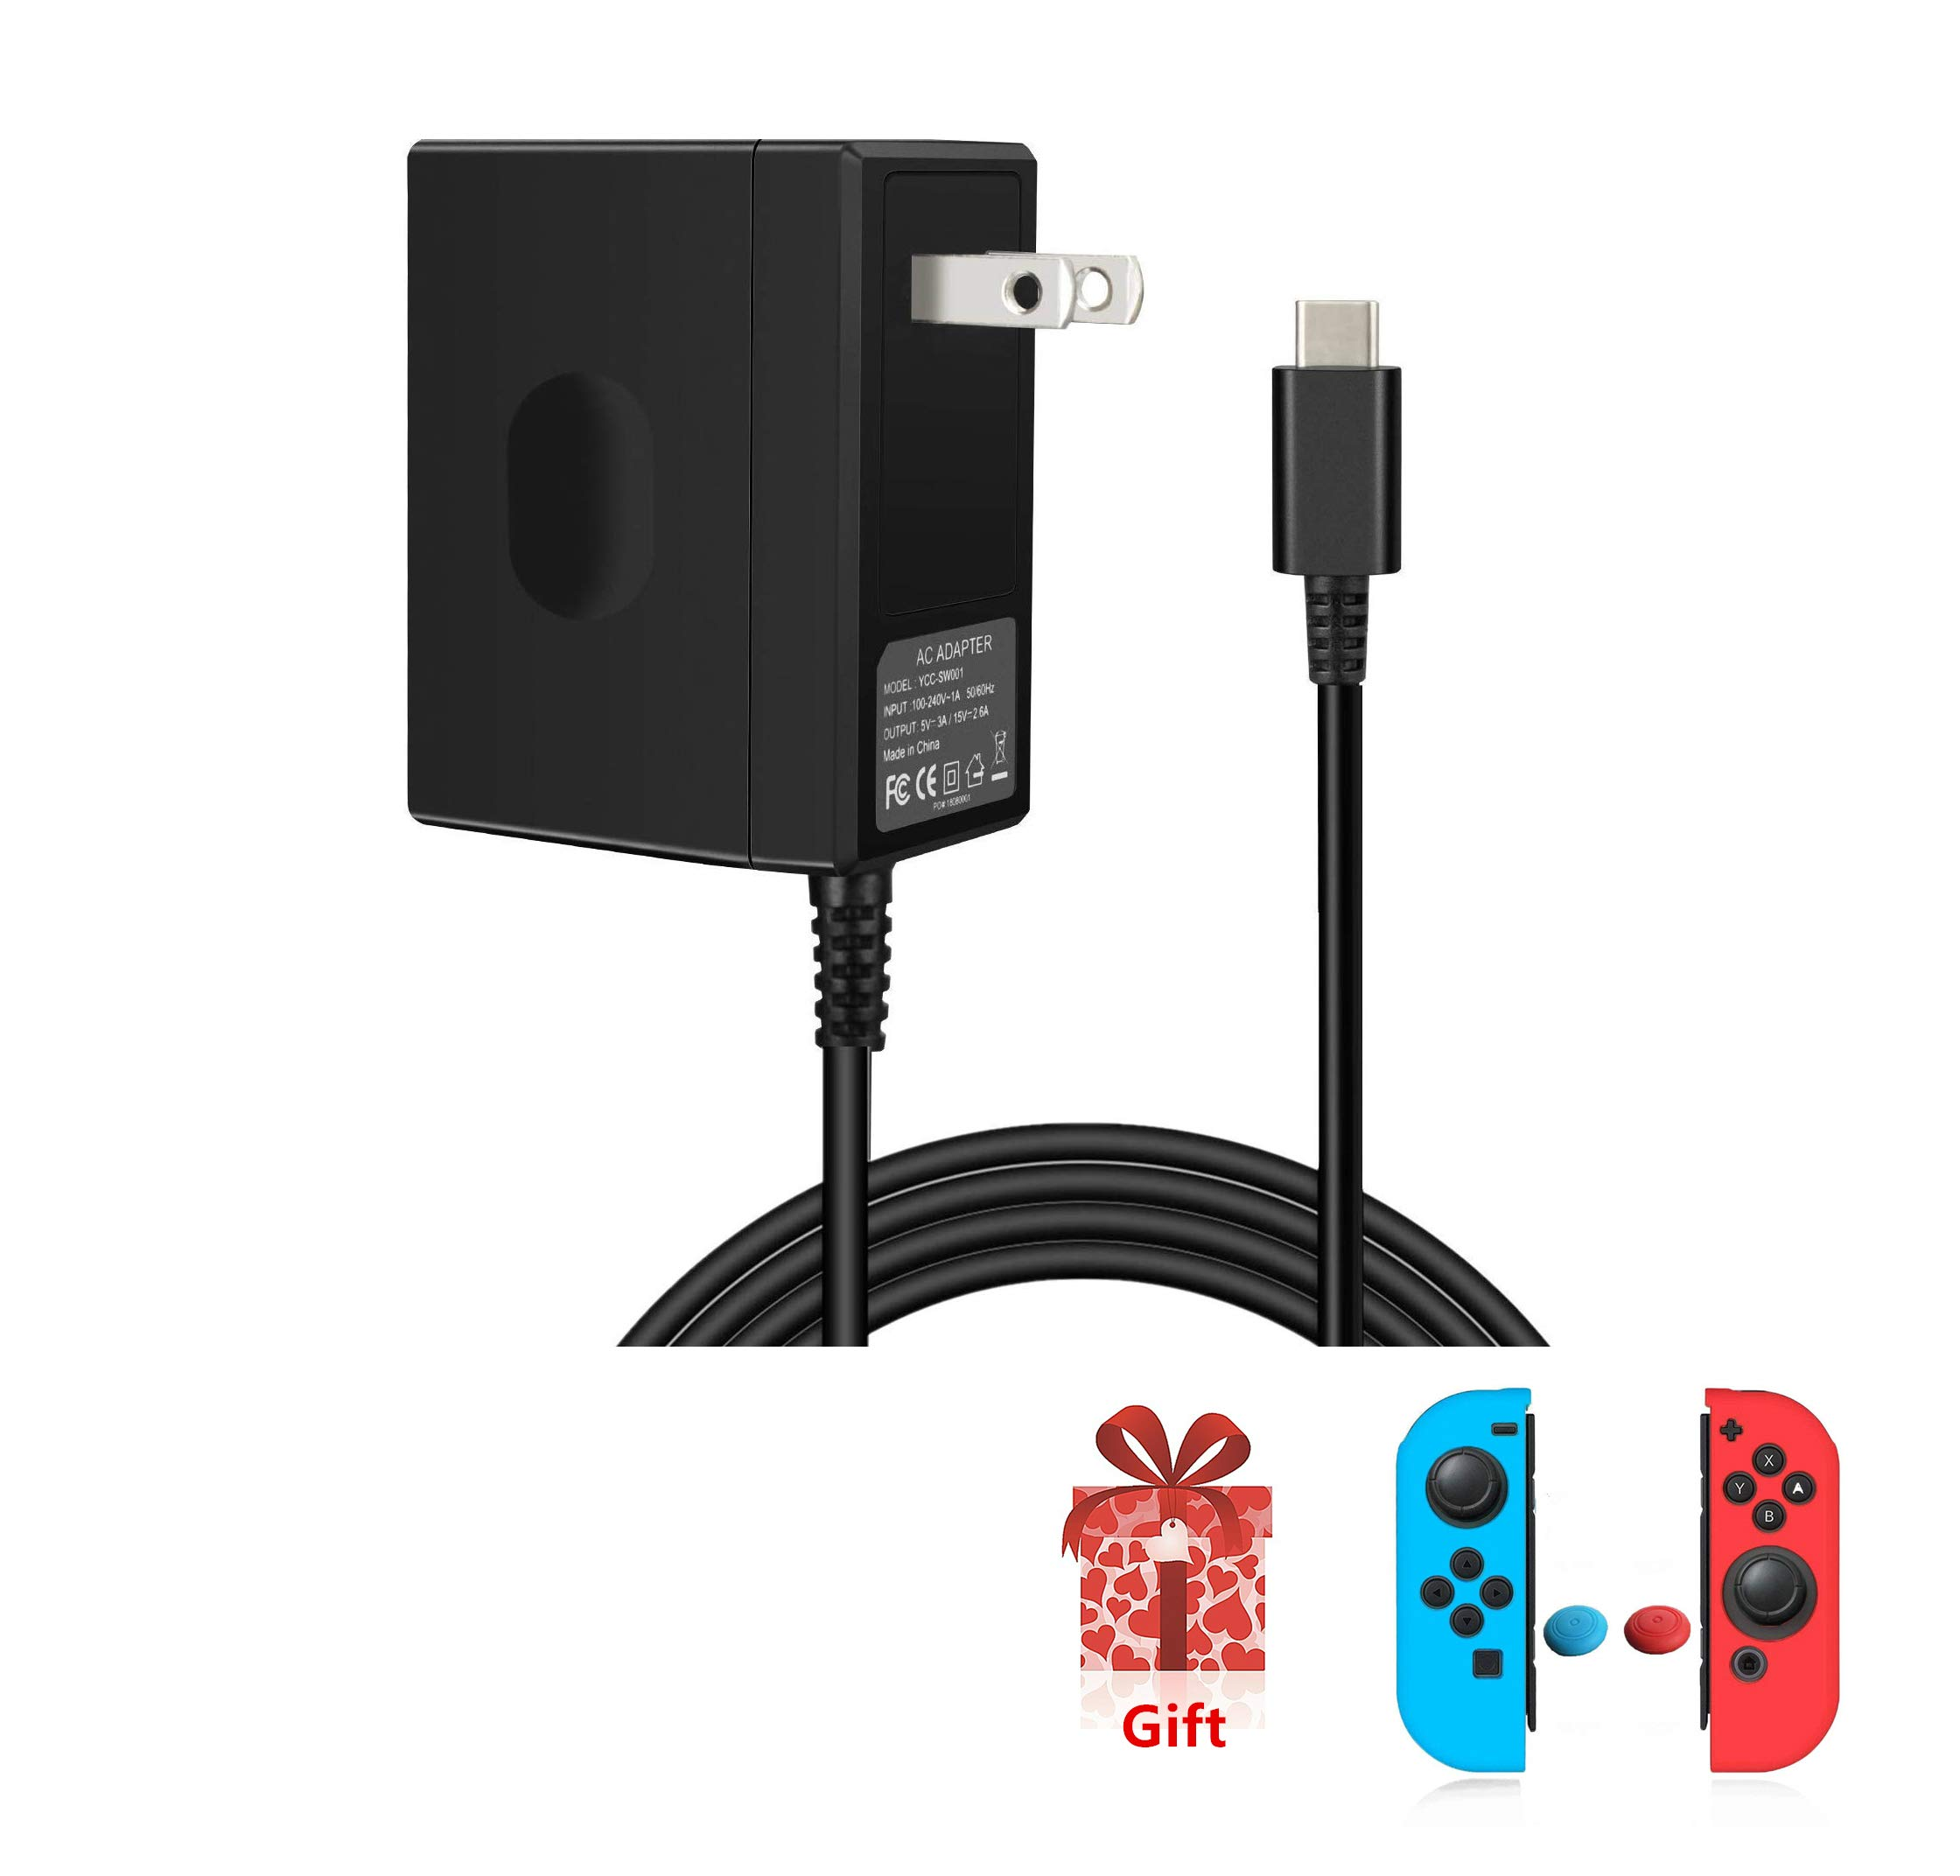 Nintendo Switch Power Adapter, Selkie Switch Charger, Power Adapter for Nintendo Switch 15V 2.6A Fast Charging Kit for Switch Dock and Pro Controller (Support TV Mode),Black